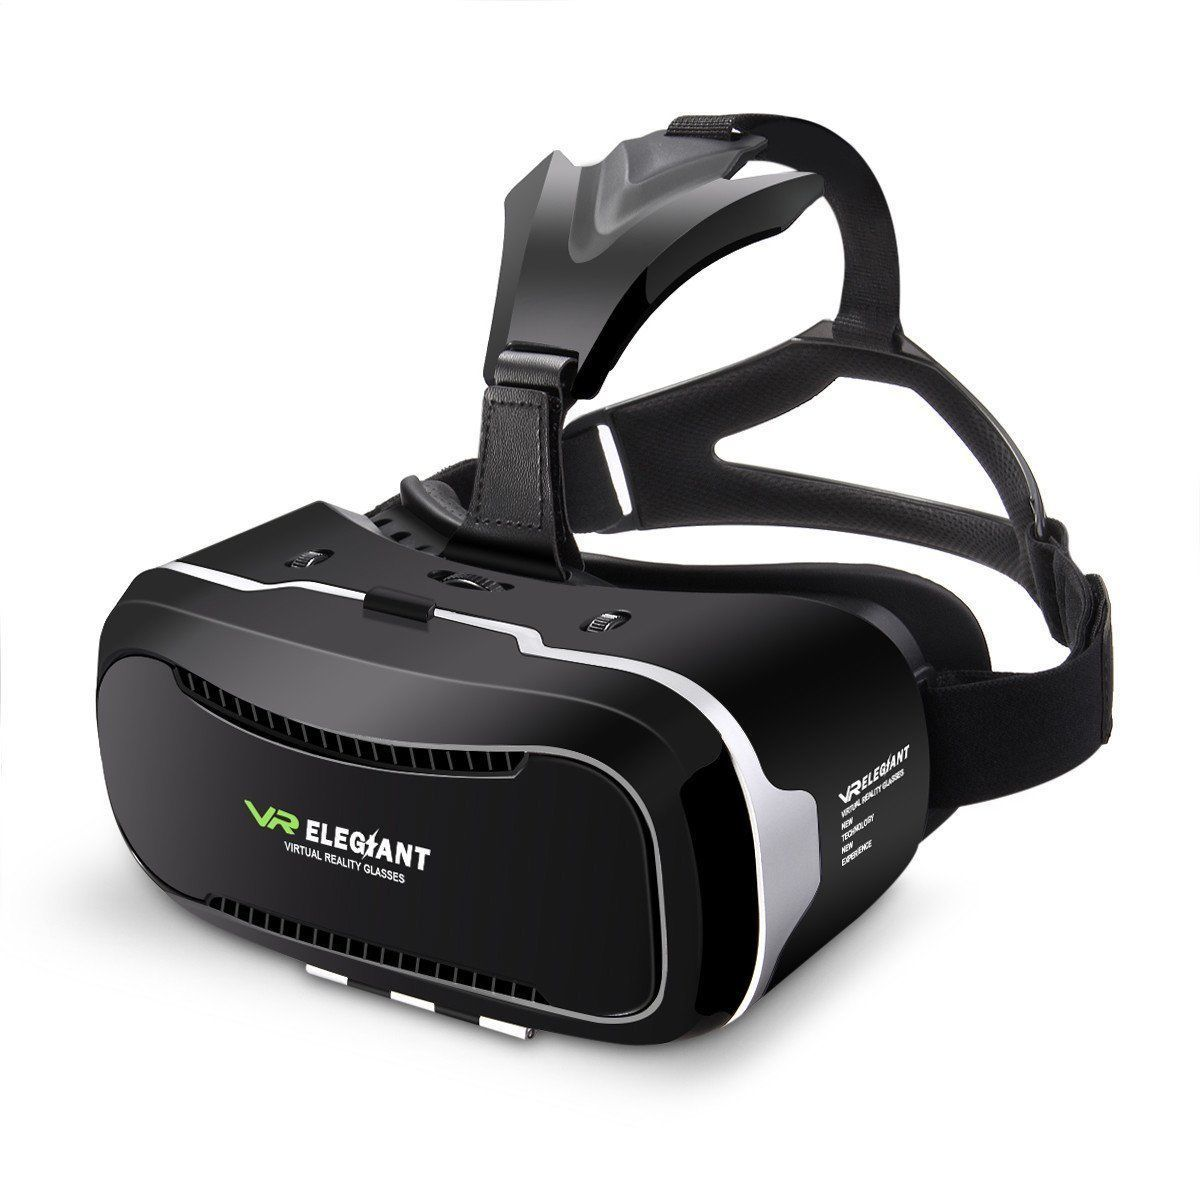 3d Vr Virtual Reality Smart Glass Headset For Iphone 6 Plus Samsung Box Remote Bluetooth S7 All 4 Appsbluetooth Remotevr